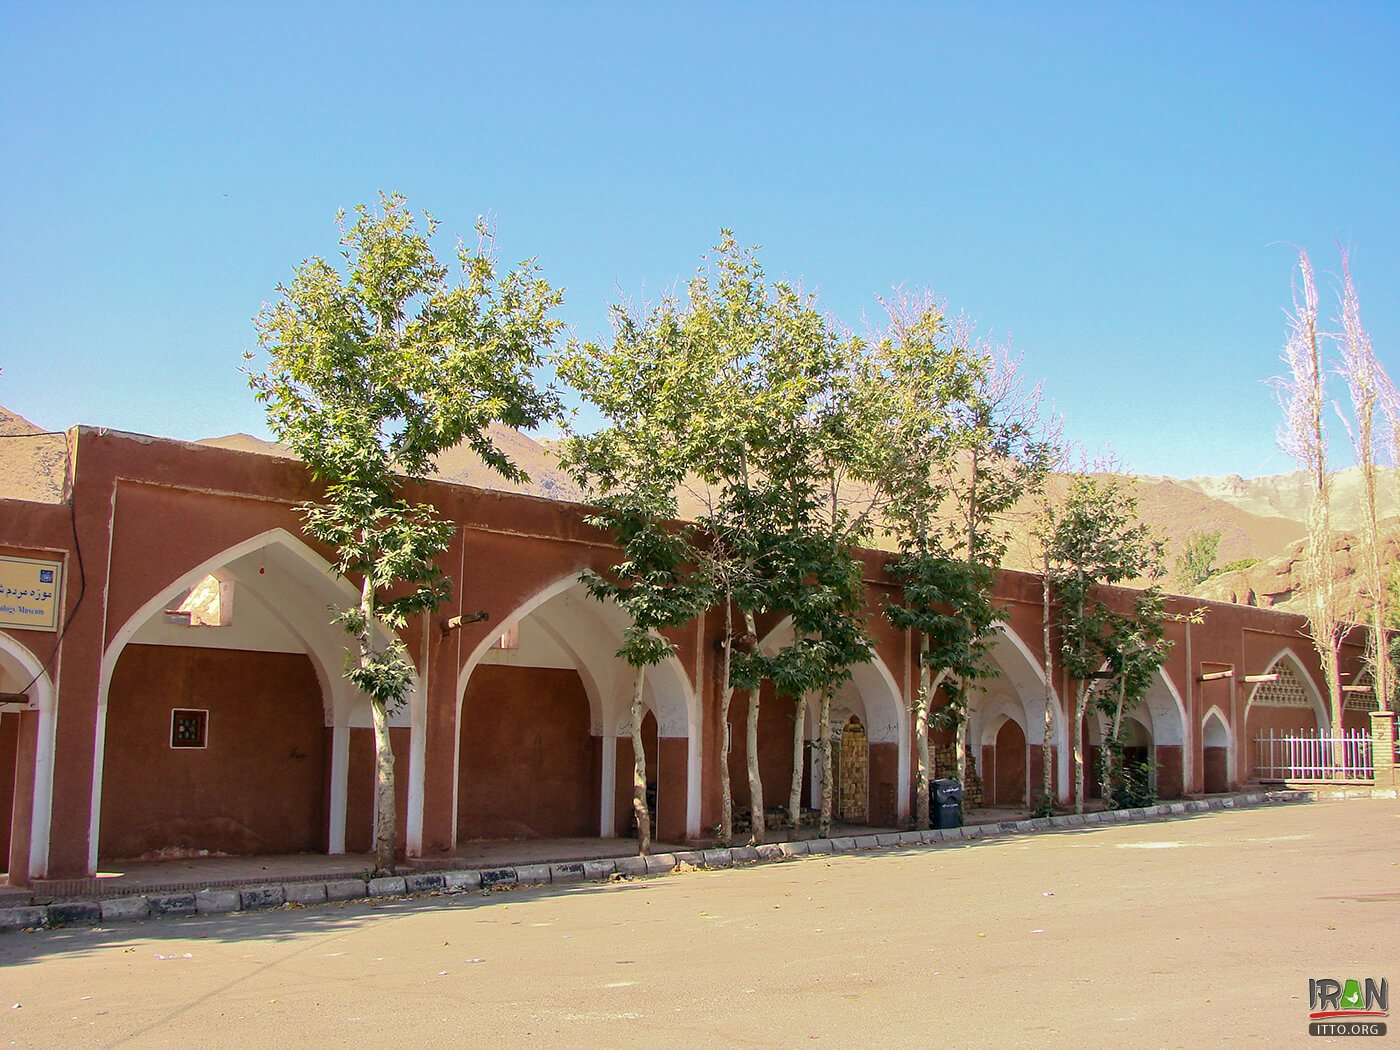 Abiaaneh, Abyaaneh, Abeyaneh,ابیانه,کاشان,استان اصفهان,isfahan province,abeianeh,abeiyaneh,abeyane,isfahan province,esfahan province